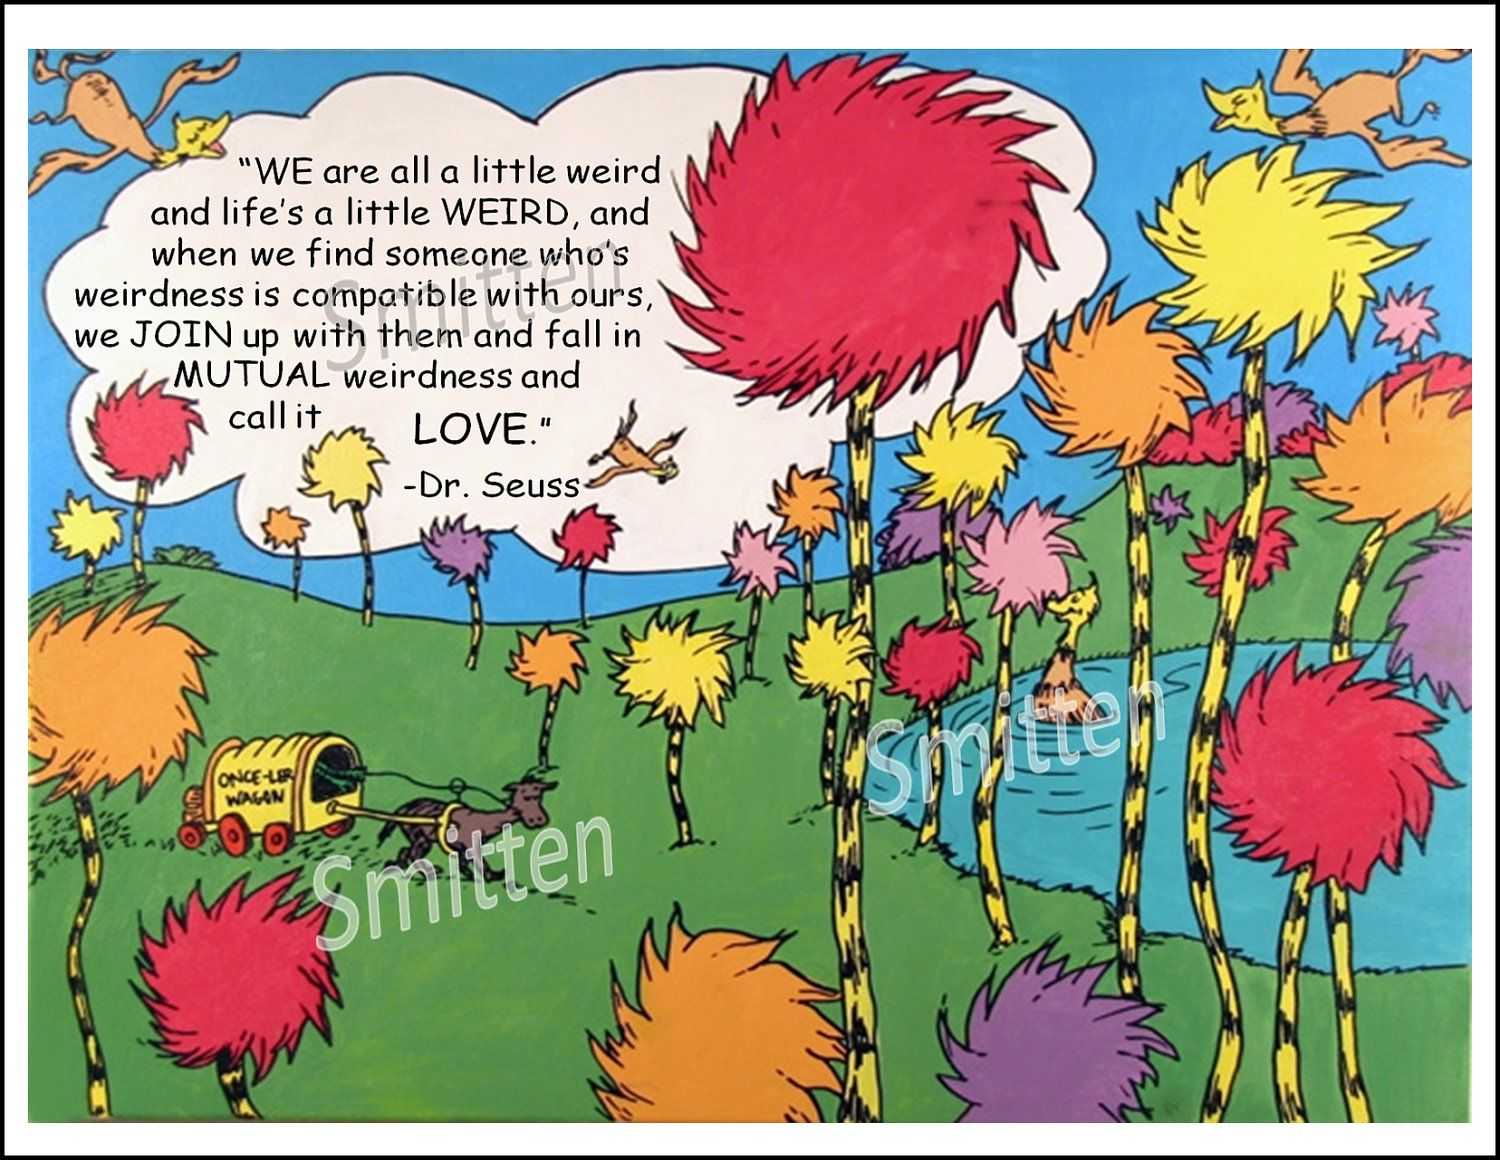 Dr Seuss Weird Love Quote Poster Drseusslovequotesmutualweirdnessi1 1500×1160